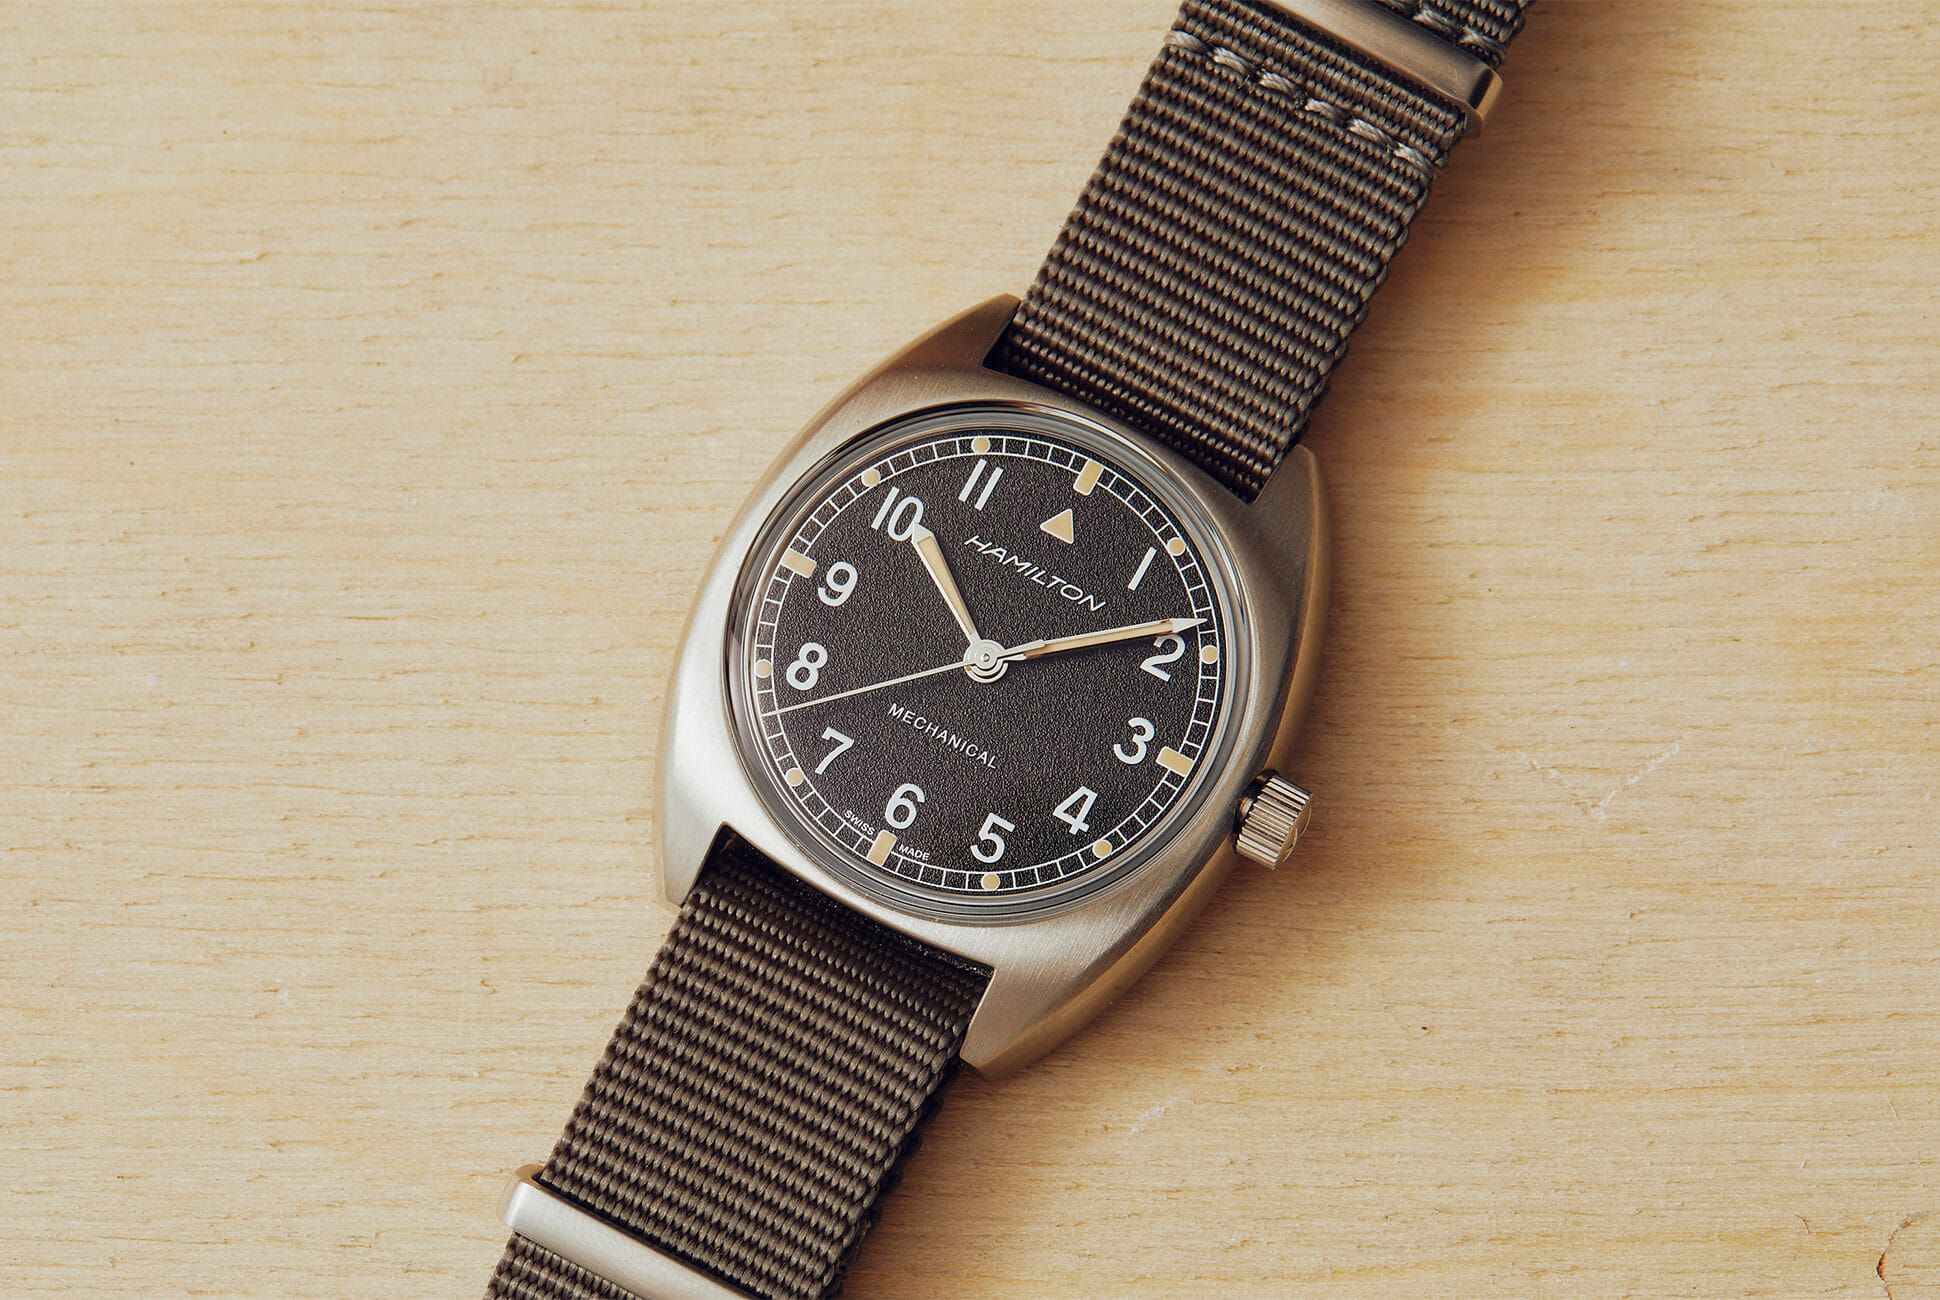 This-Affordable-New-Military-Watch-Is-Even-Better-than-the-Vintage-Original-Gear-Patrol-slide-1